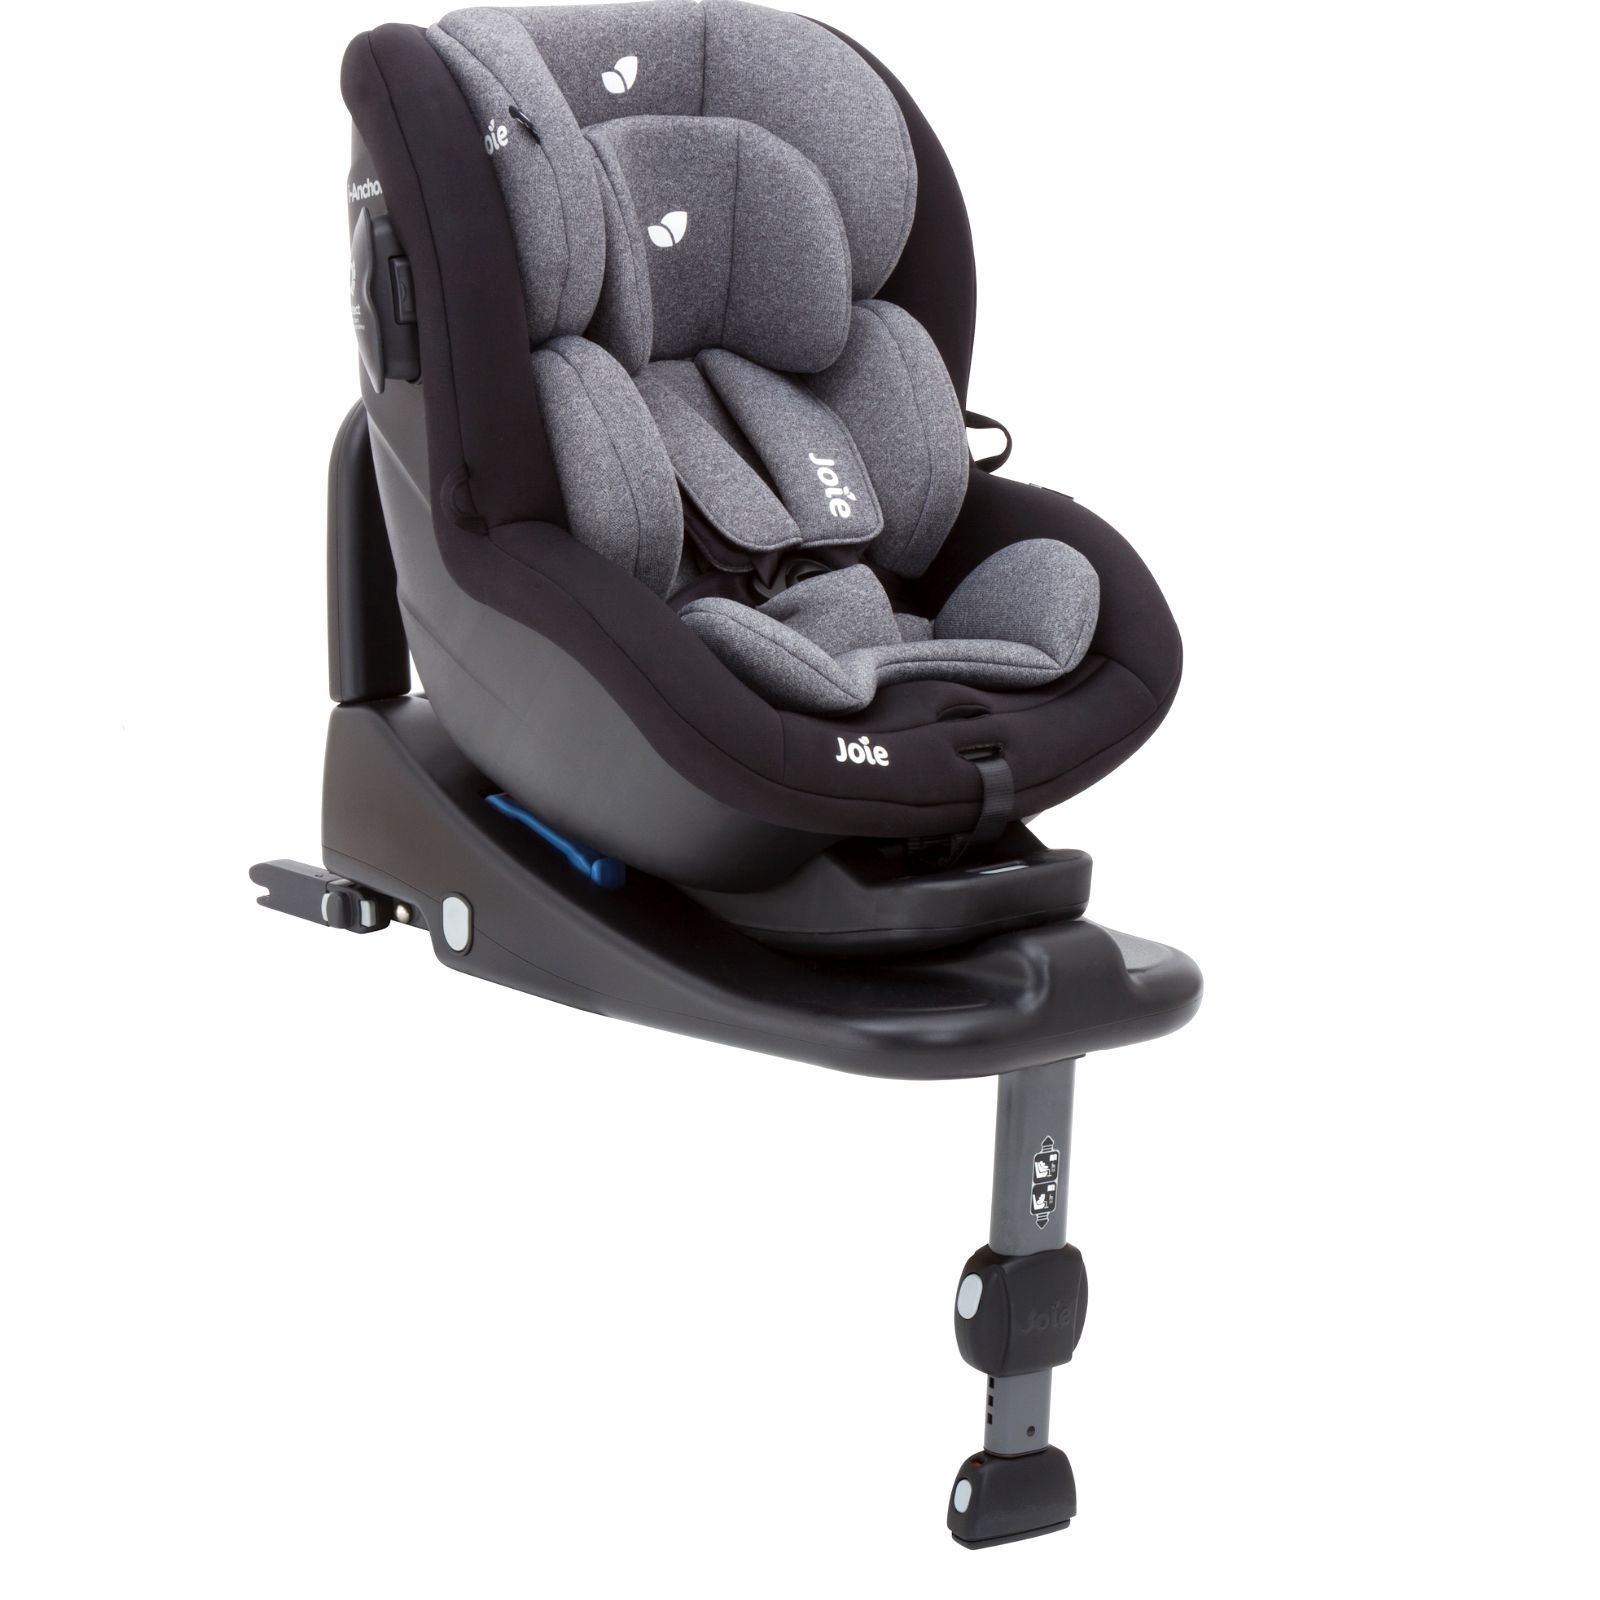 Joie Car Seat For Isofix Base